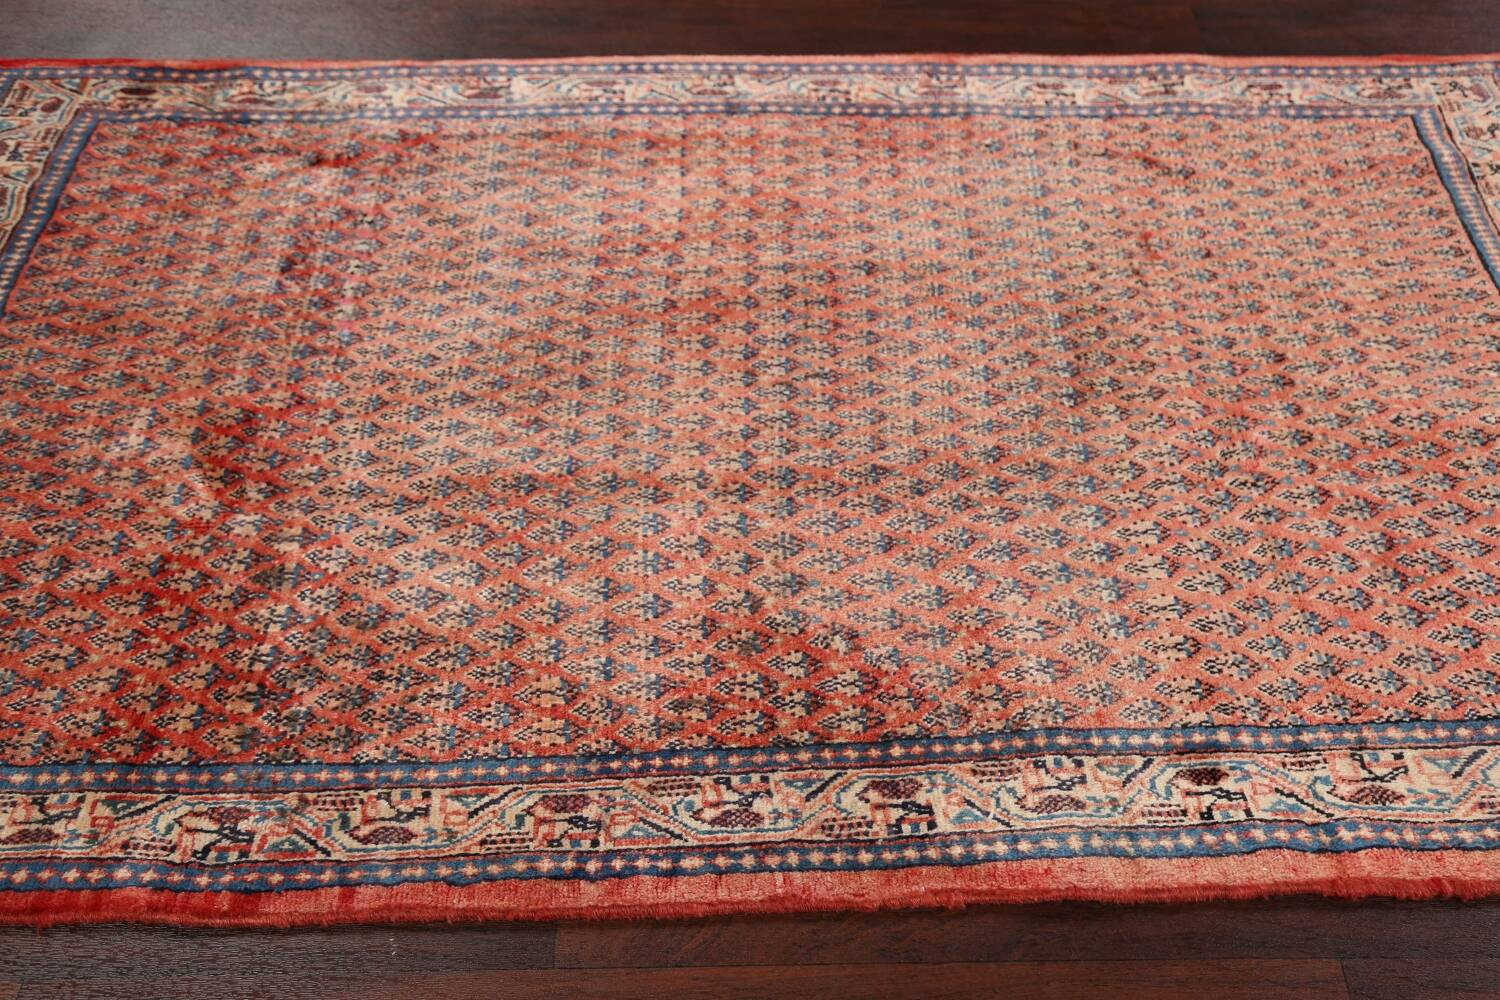 Vintage All-Over Boteh Botemir Persian Area Rug 4x7 image 17